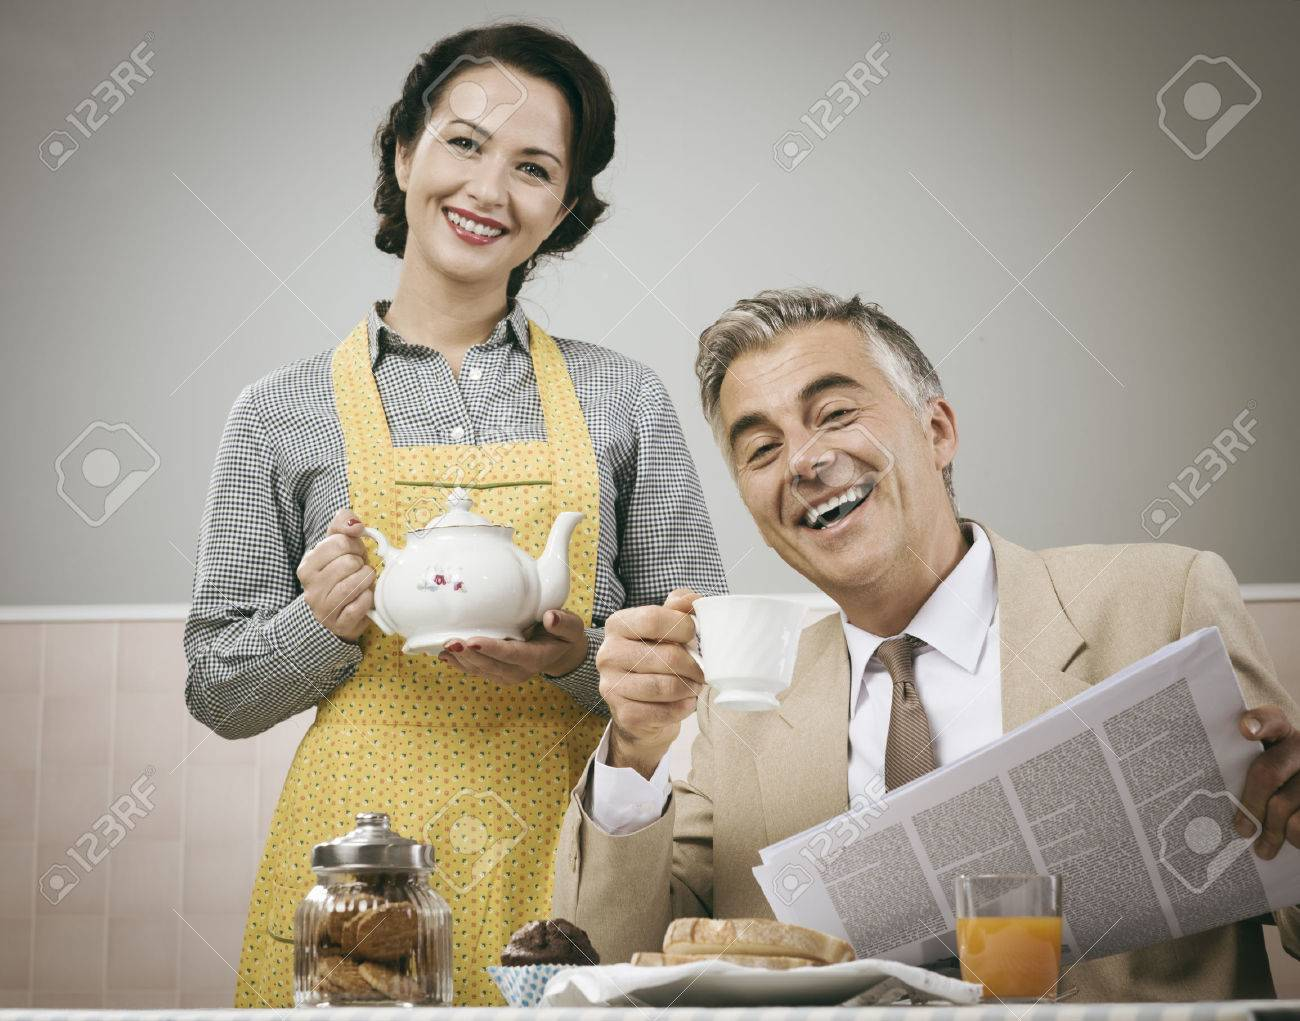 1950s beautiful woman serving tea for breakfast to her smiling husband Stock Photo - 44583413